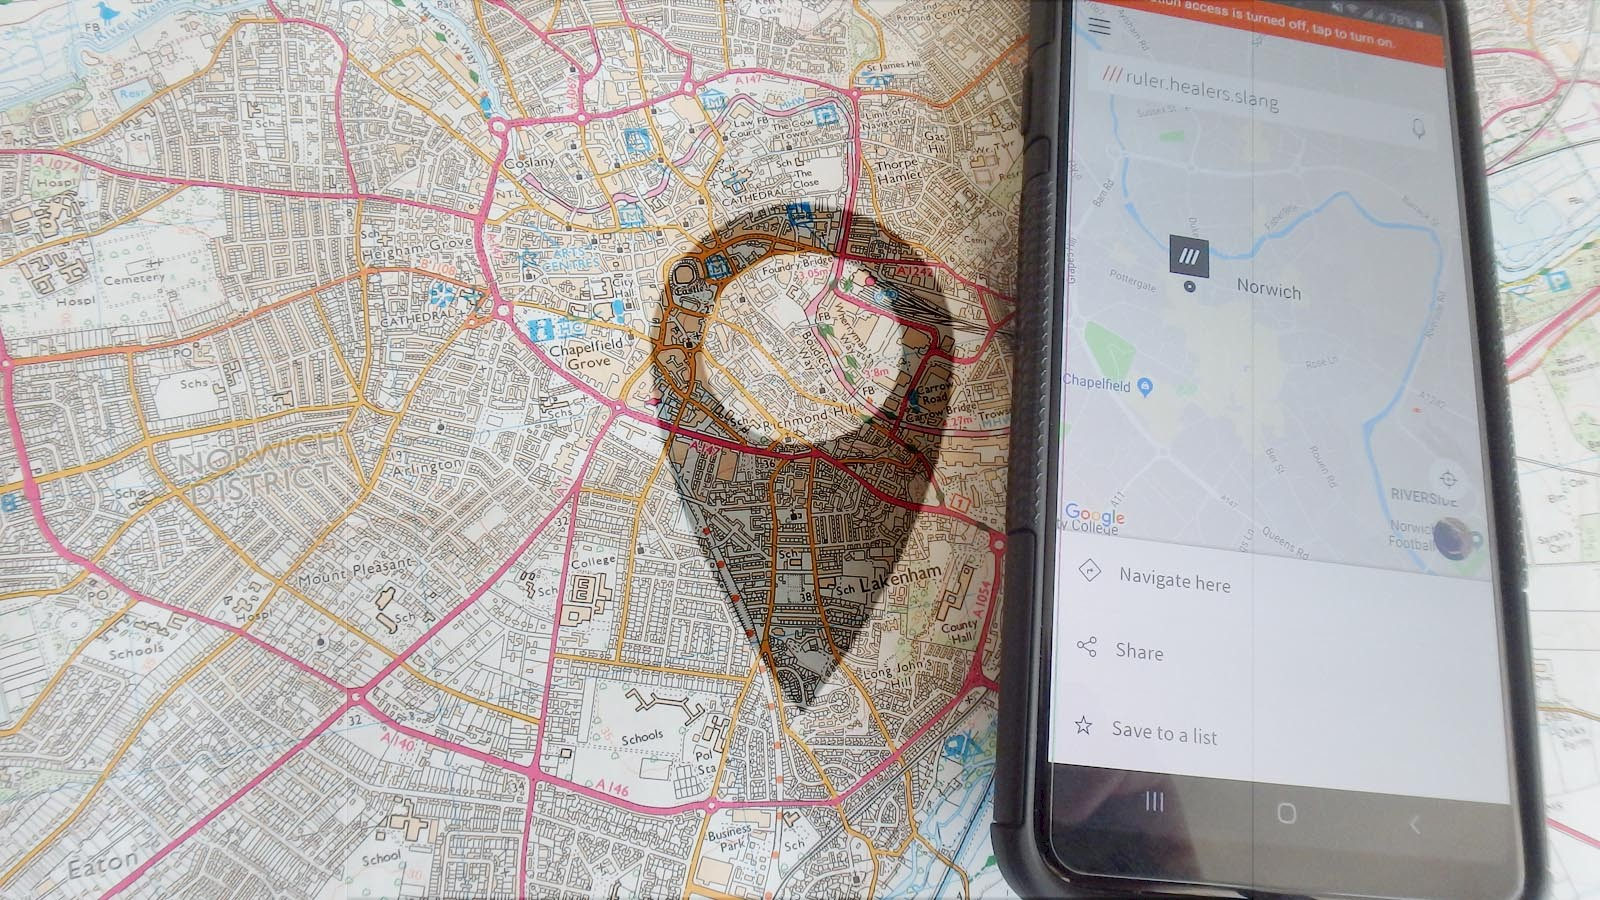 Image showing a 1:25000 OS map with a phone showing What 3 Words beside it, faded with a location symbol.